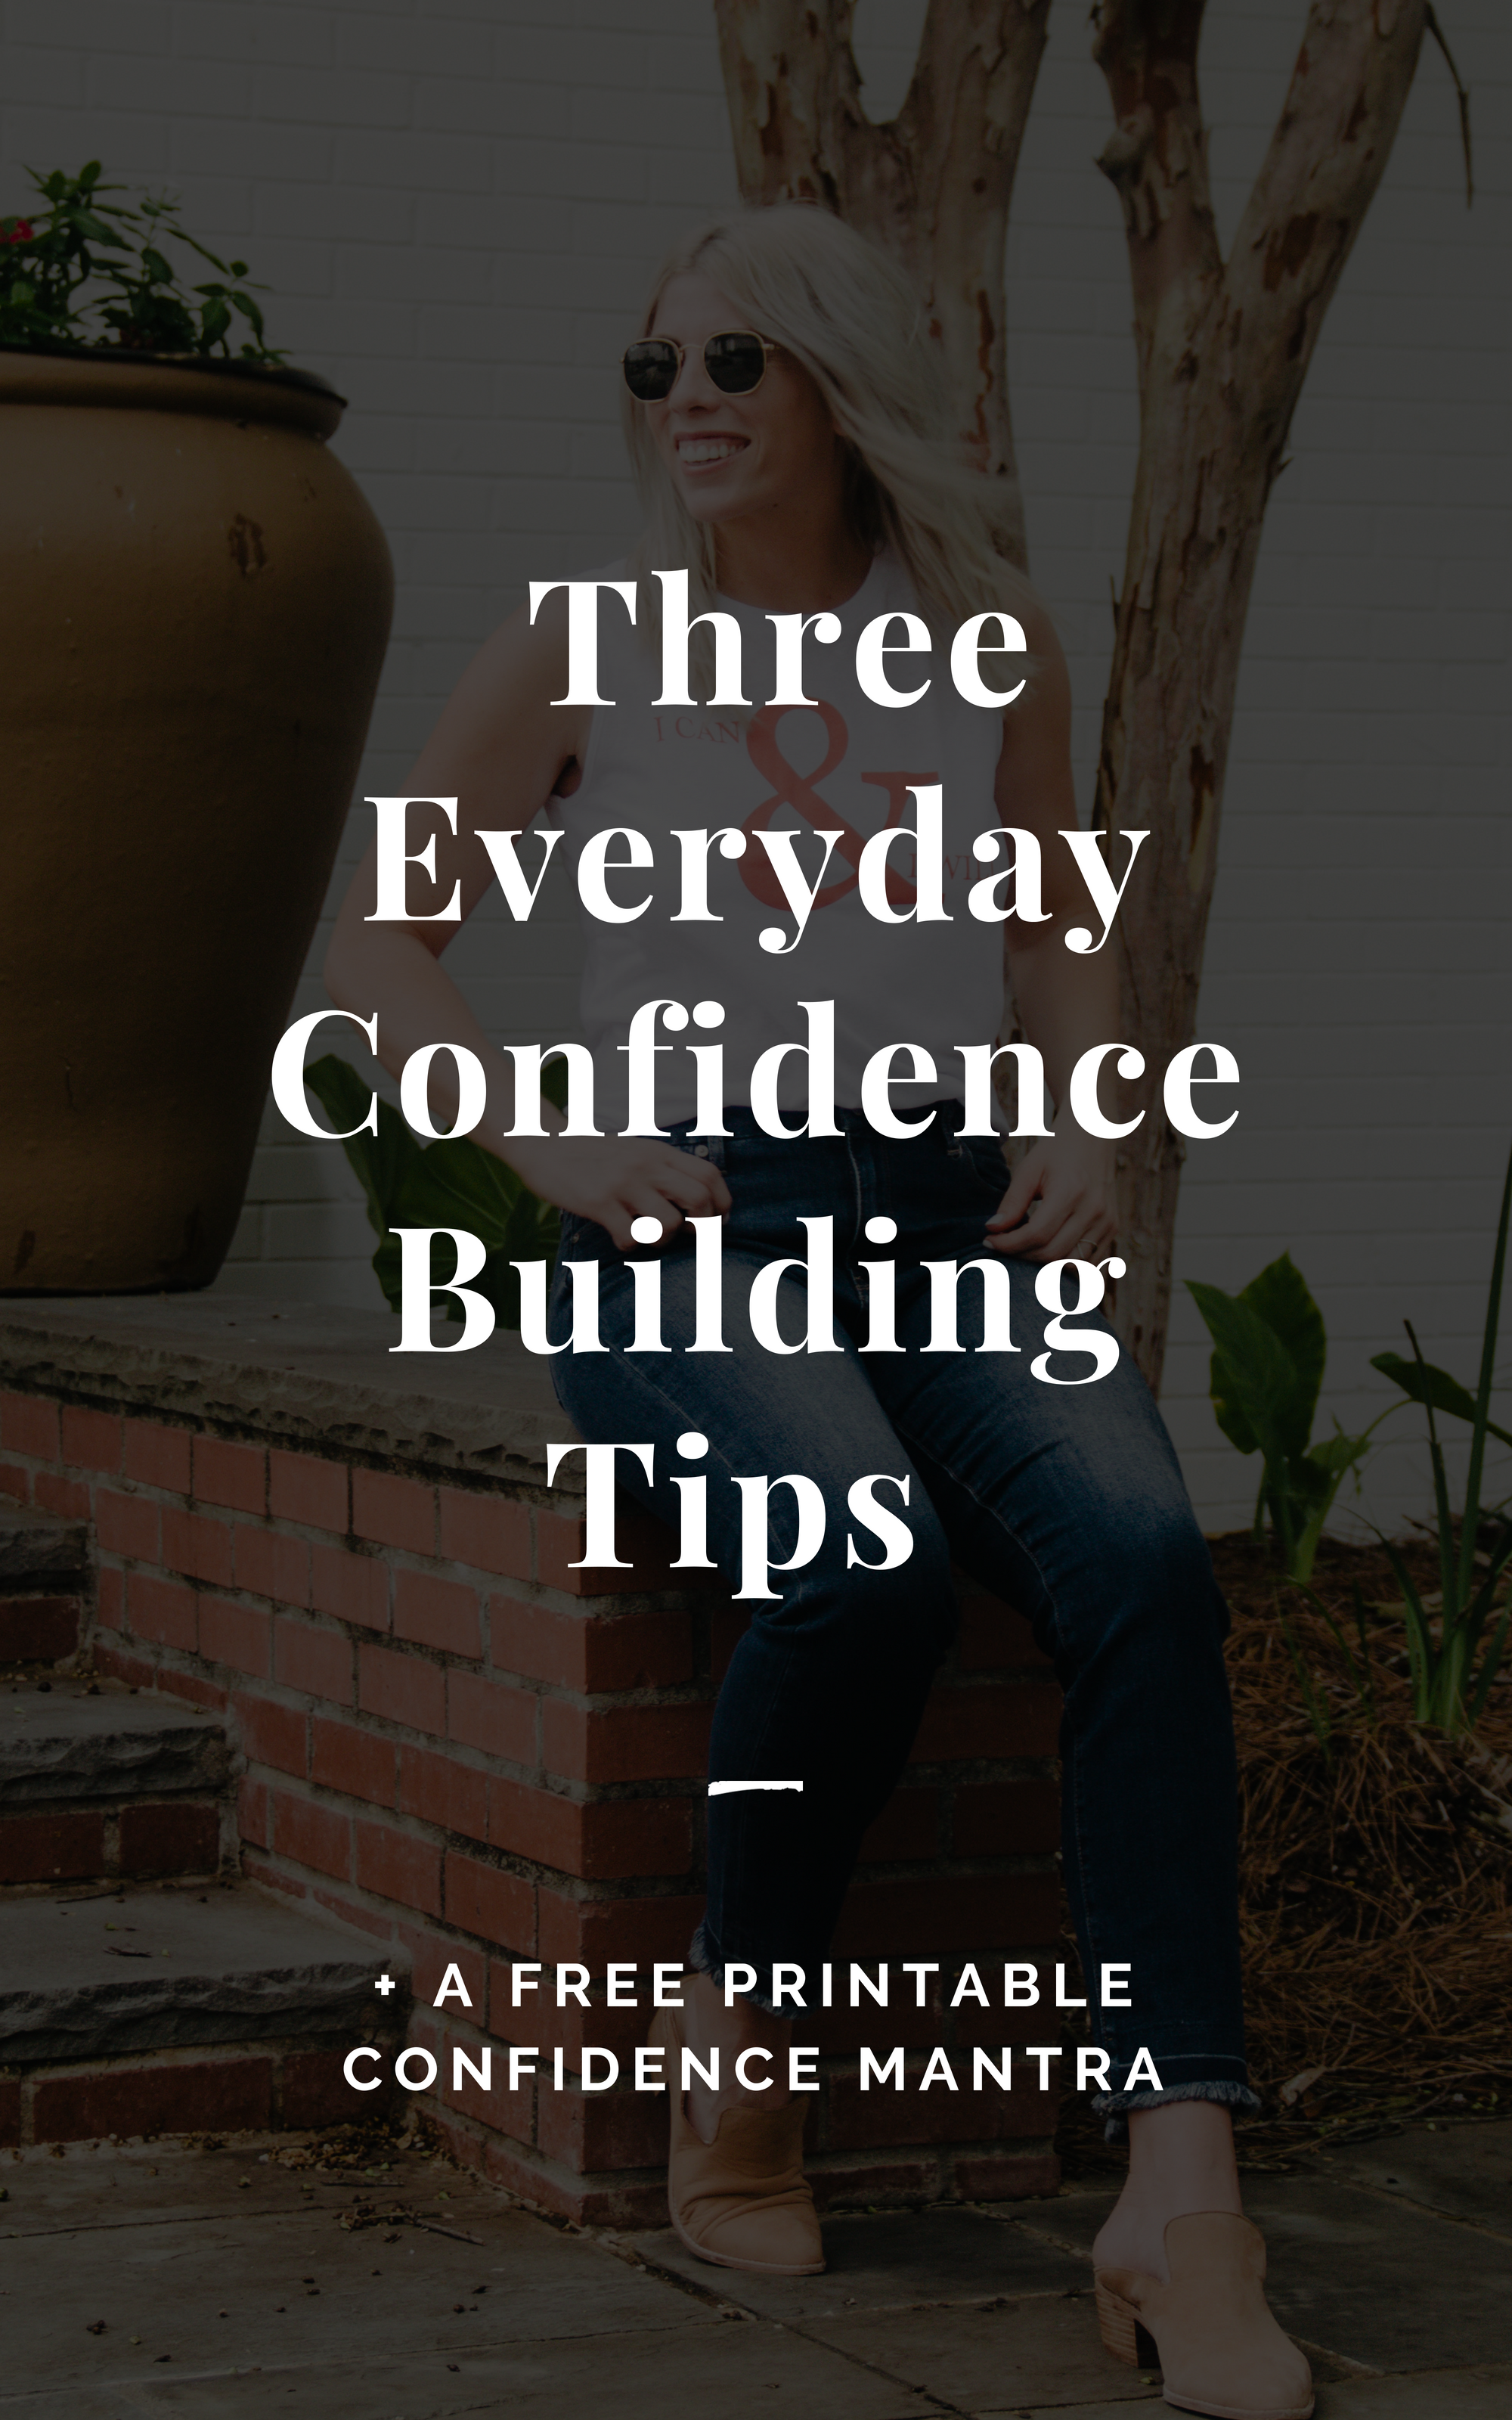 3 Everyday Confidence Building Tips